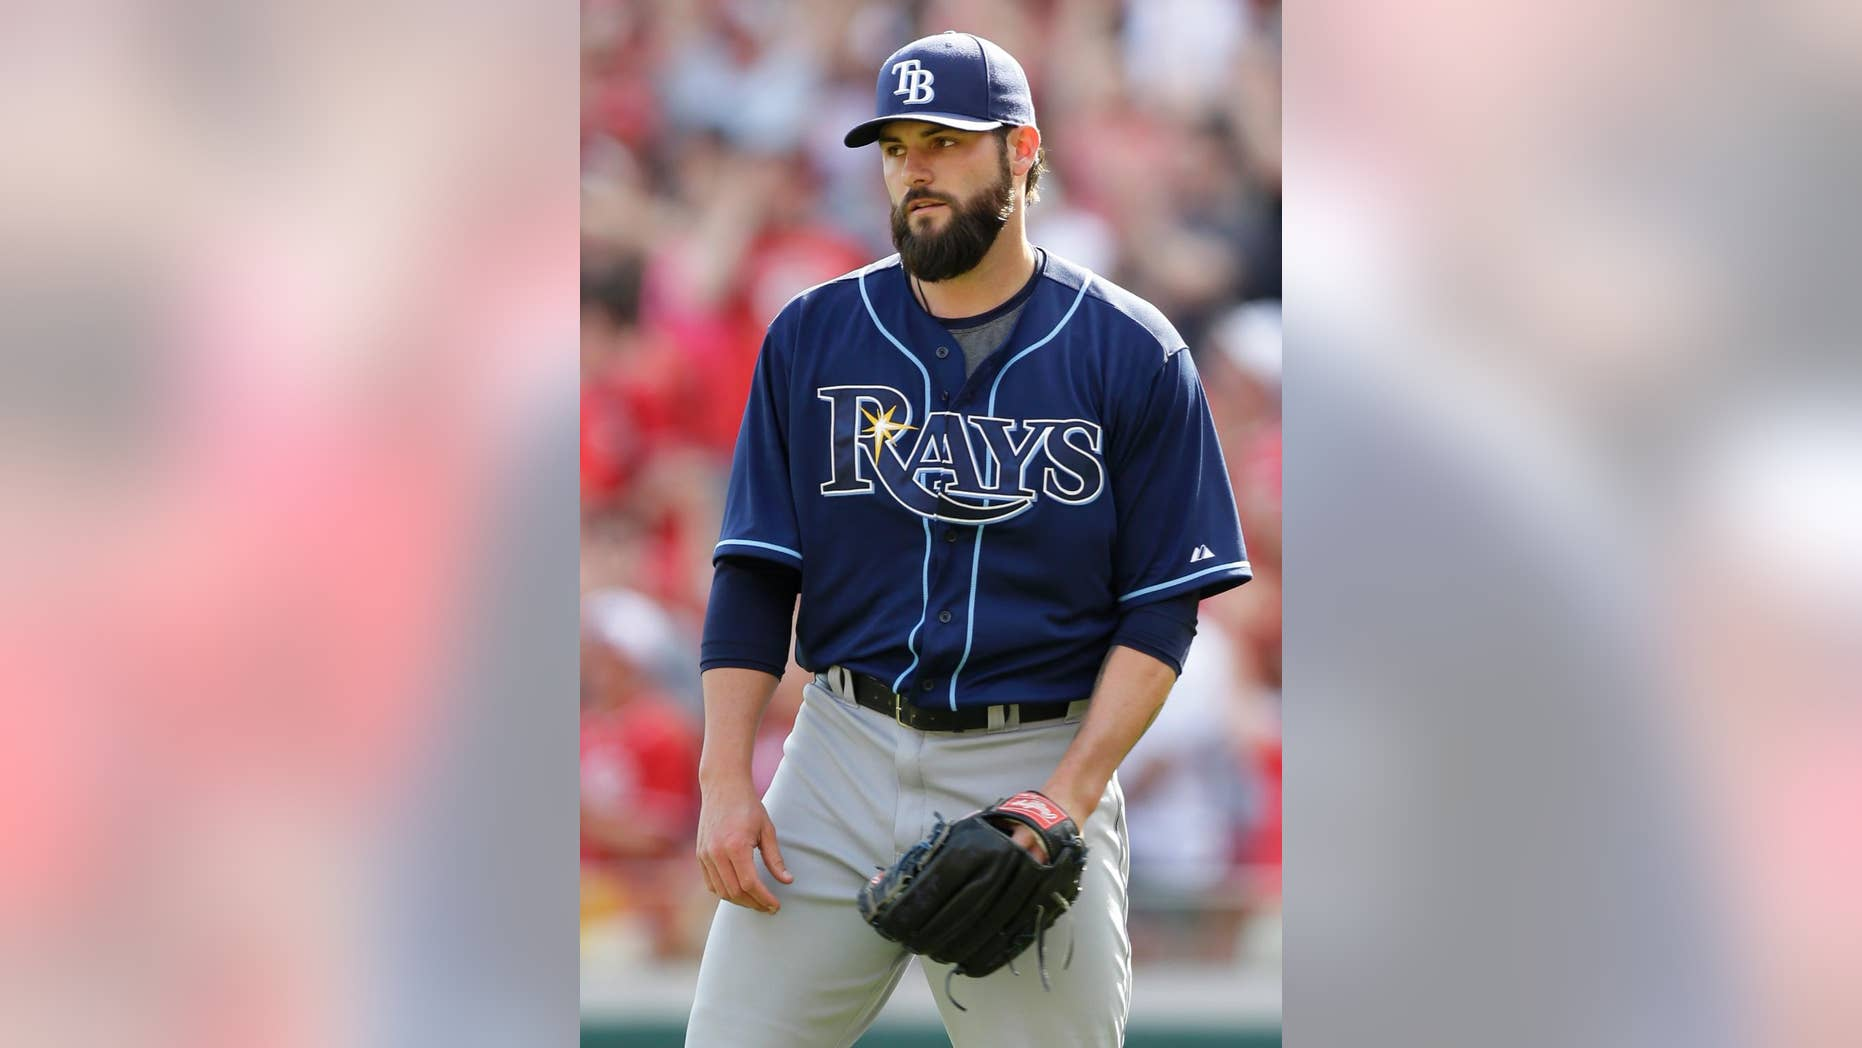 Tampa Bay Rays relief pitcher Josh Lueke turns toward the mound after giving up a pinch-hit grand slam to Cincinnati Reds' Chris Heisey in the eighth inning of a baseball game, Sunday, April 13, 2014, in Cincinnati. Cincinnati won 12-4. (AP Photo/Al Behrman)